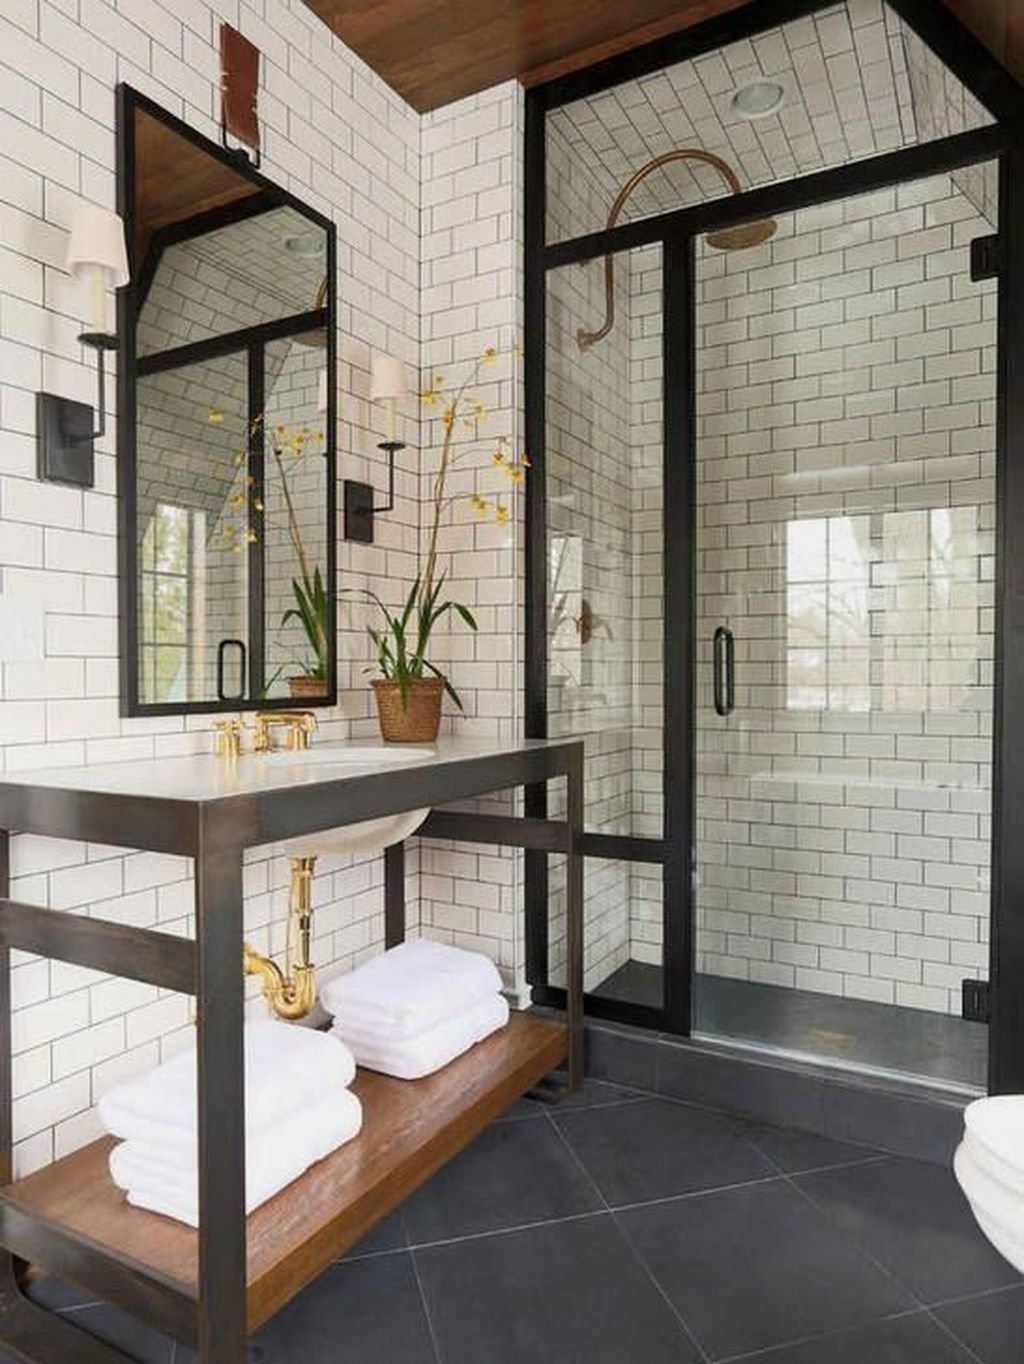 Stunning Industrial Bathroom Design Ideas 11